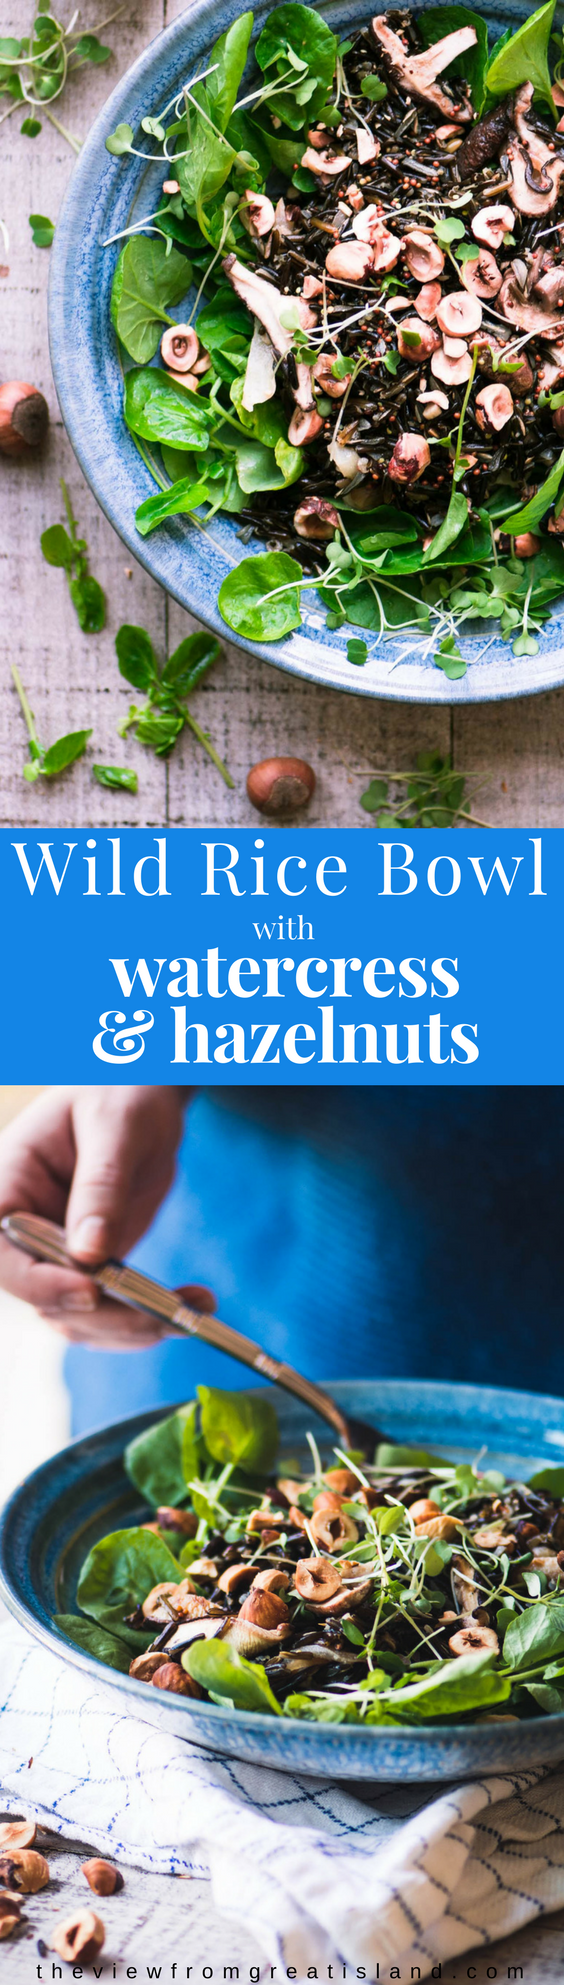 Wild Rice Bowl with Watercress and Hazelnuts ~ a warm pilaf of wild rice, onions, and mushrooms over spicy watercress topped and with toasted hazelnuts #glutenfree #ancientgrains #grainbowl #ricebowl #wildrice #salad #hazelnuts #healthy #vegan #vegetarian #lunch #dinner #greens